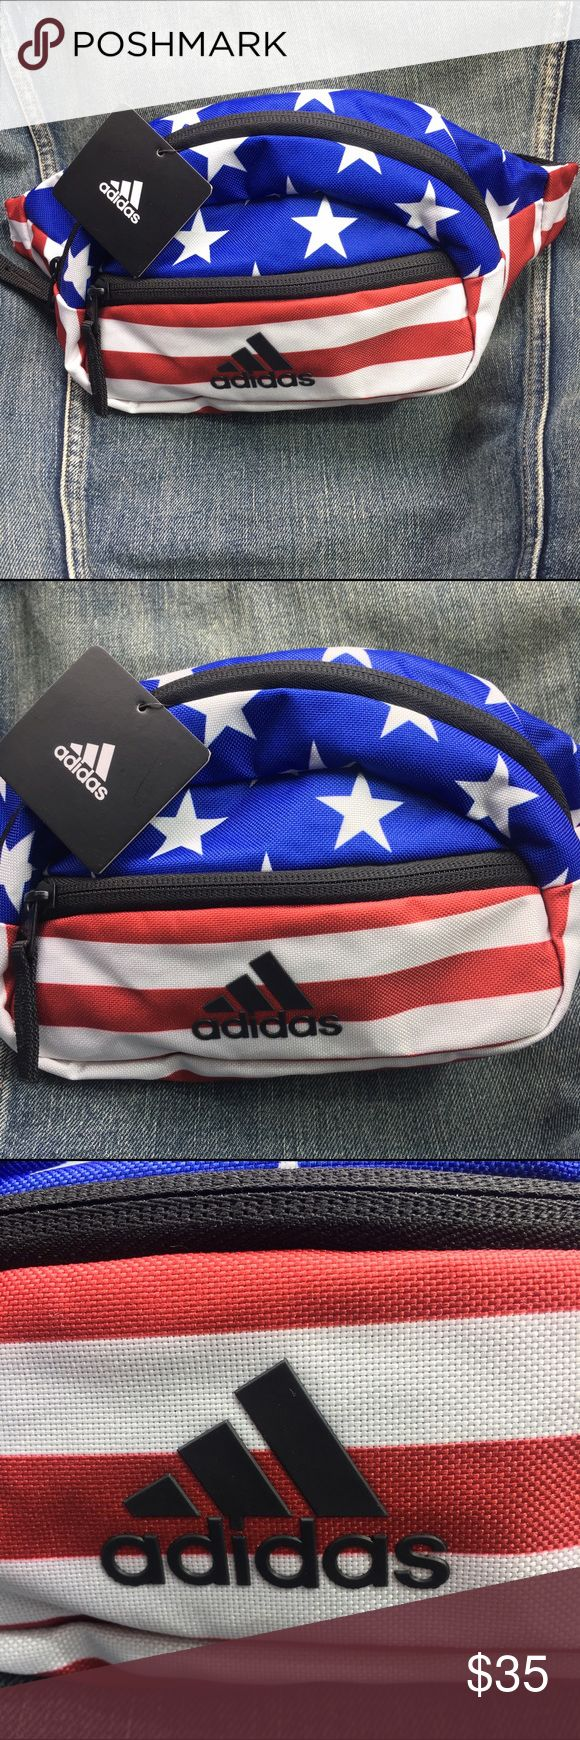 Adidas fanny pack waist pack US flag patriotic Red white and blue US flag print canvas fanny pack by adidas. The 3 stripes logo is raised. Super cute. Adjustable waist band. I also have this in solid black. adidas Bags Travel Bags